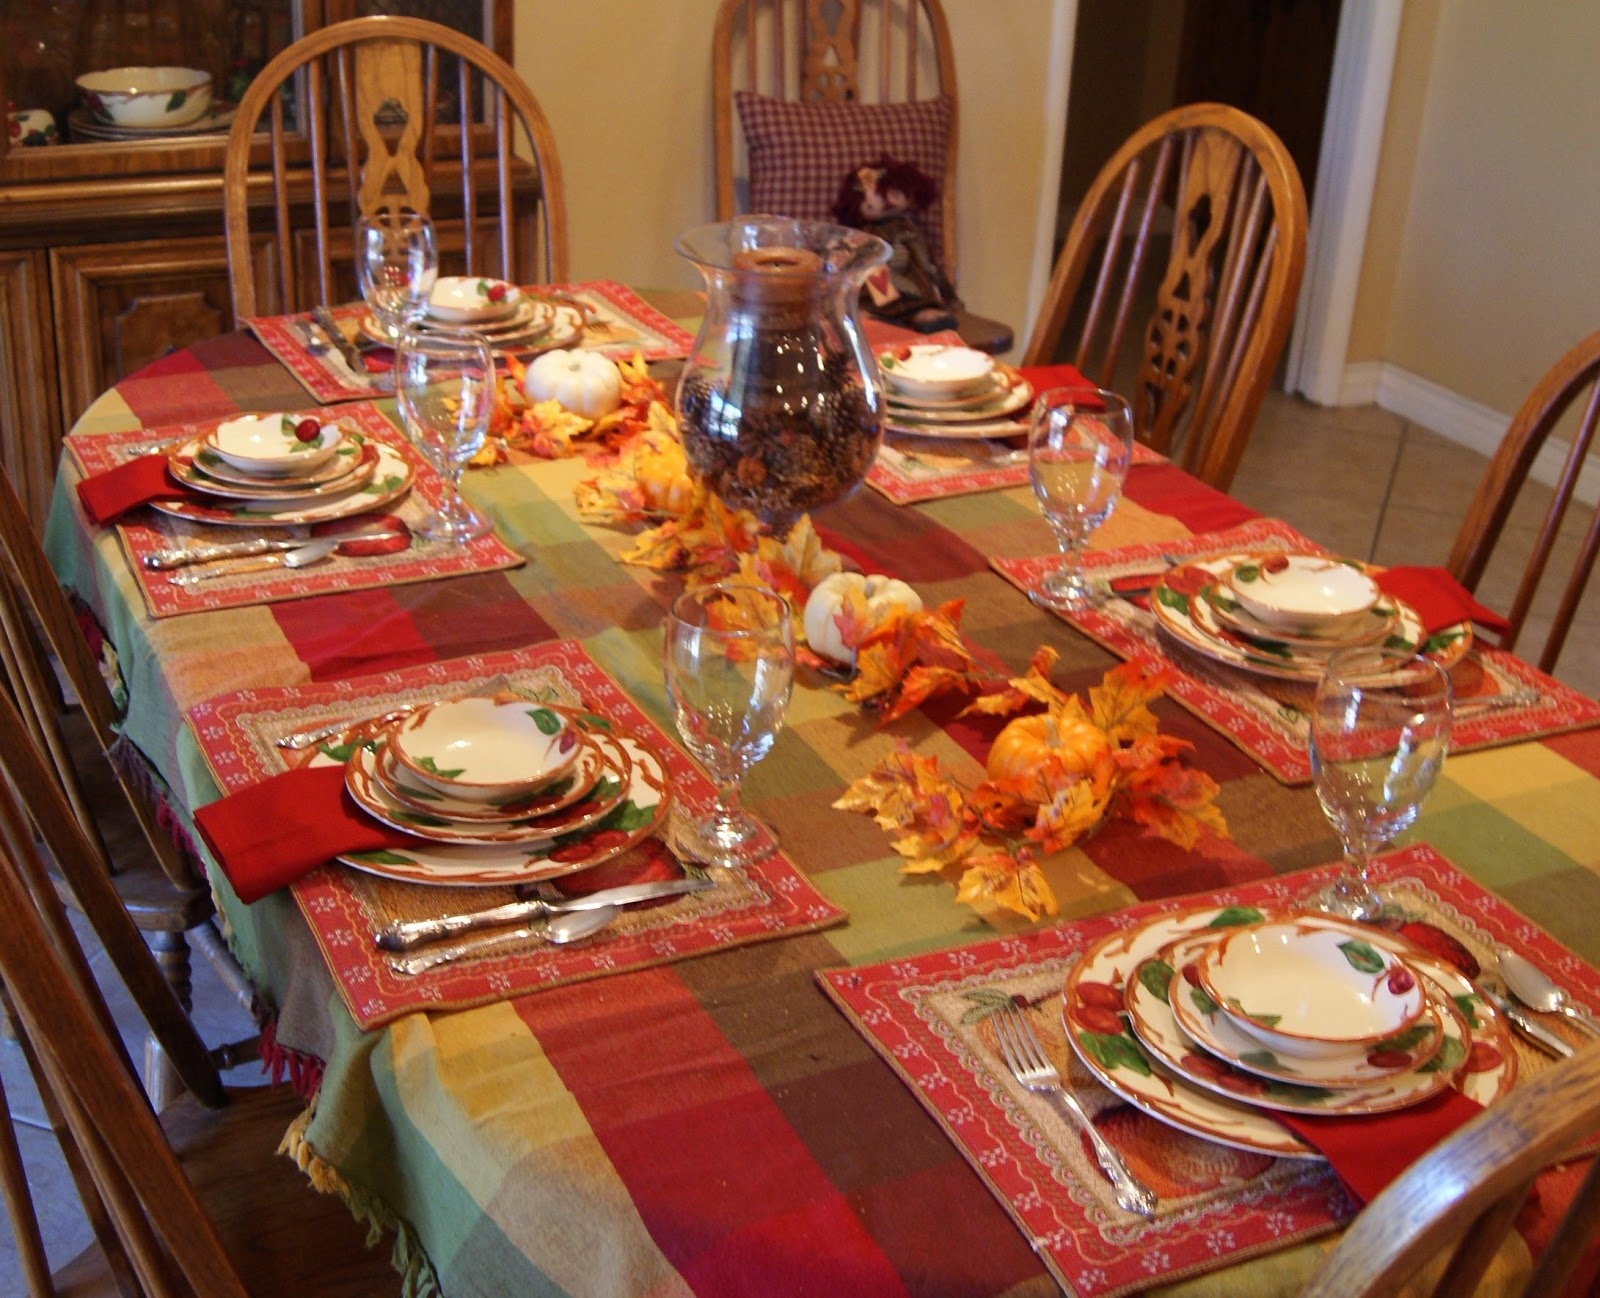 Puddle jumper creations my thanksgiving table - Dinner table decoration ideas ...